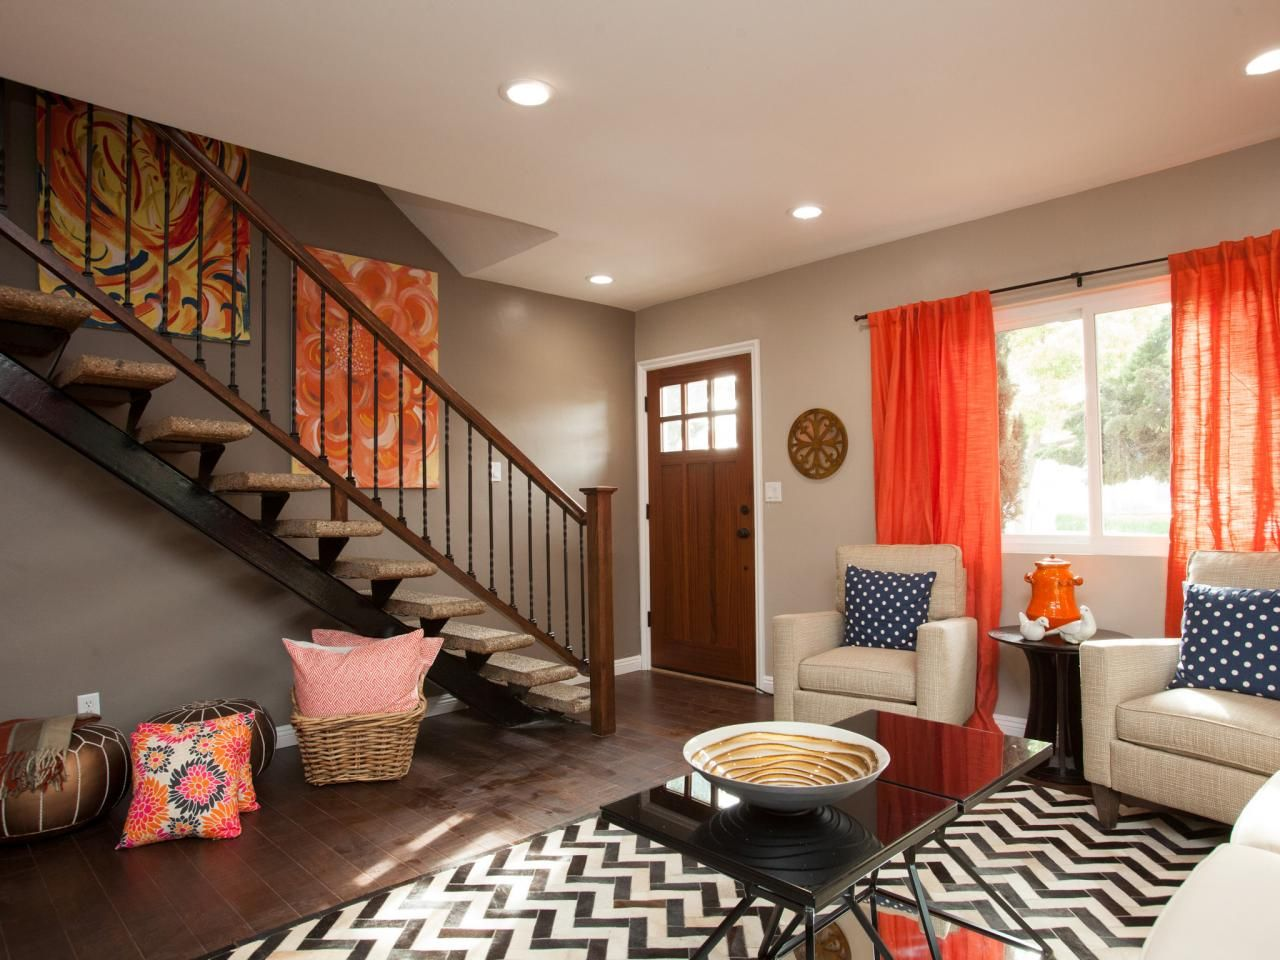 Living room color scheme interior design ideas likewise interior home - Orange Is Not For Me But I Love Their Use Of Patterns And Pops Of Color Her Artwork Is Beautiful Shauna And Anicka Stairwell And Banister